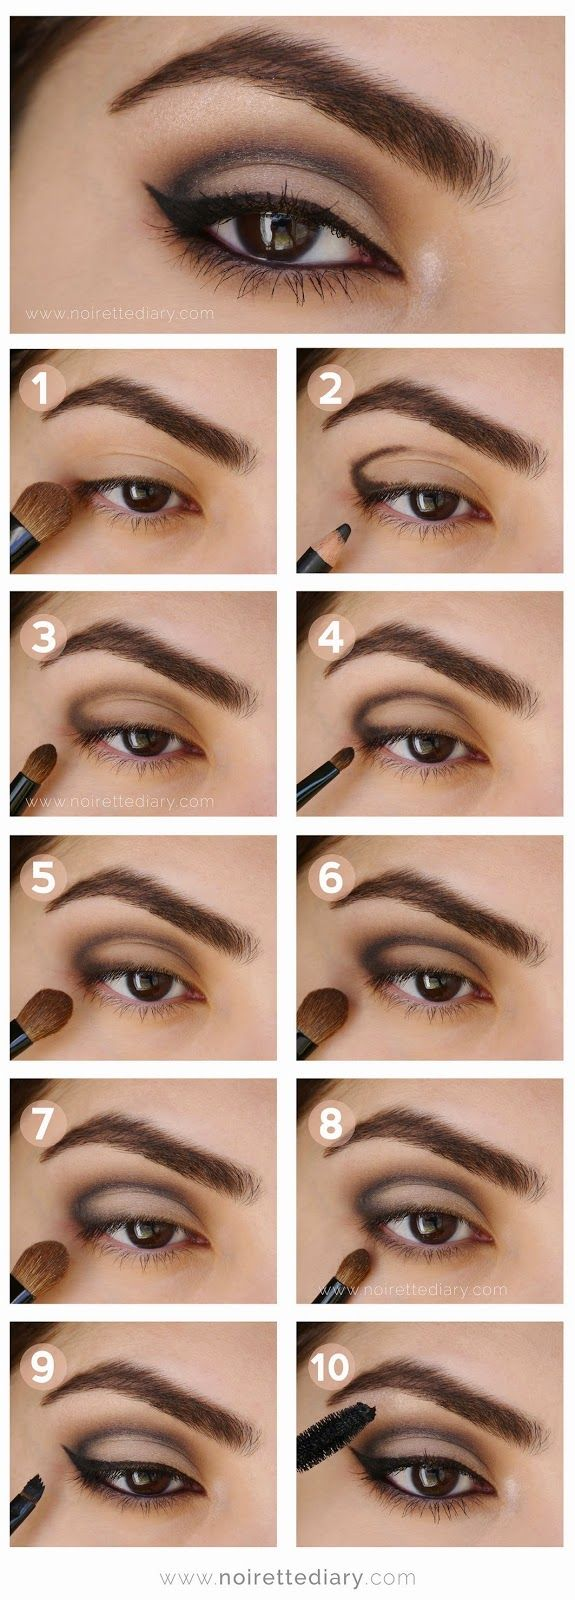 Top Beauty Tips and Tricks - The Effective Makeup Tricks For Those Moments, When You Are Sick